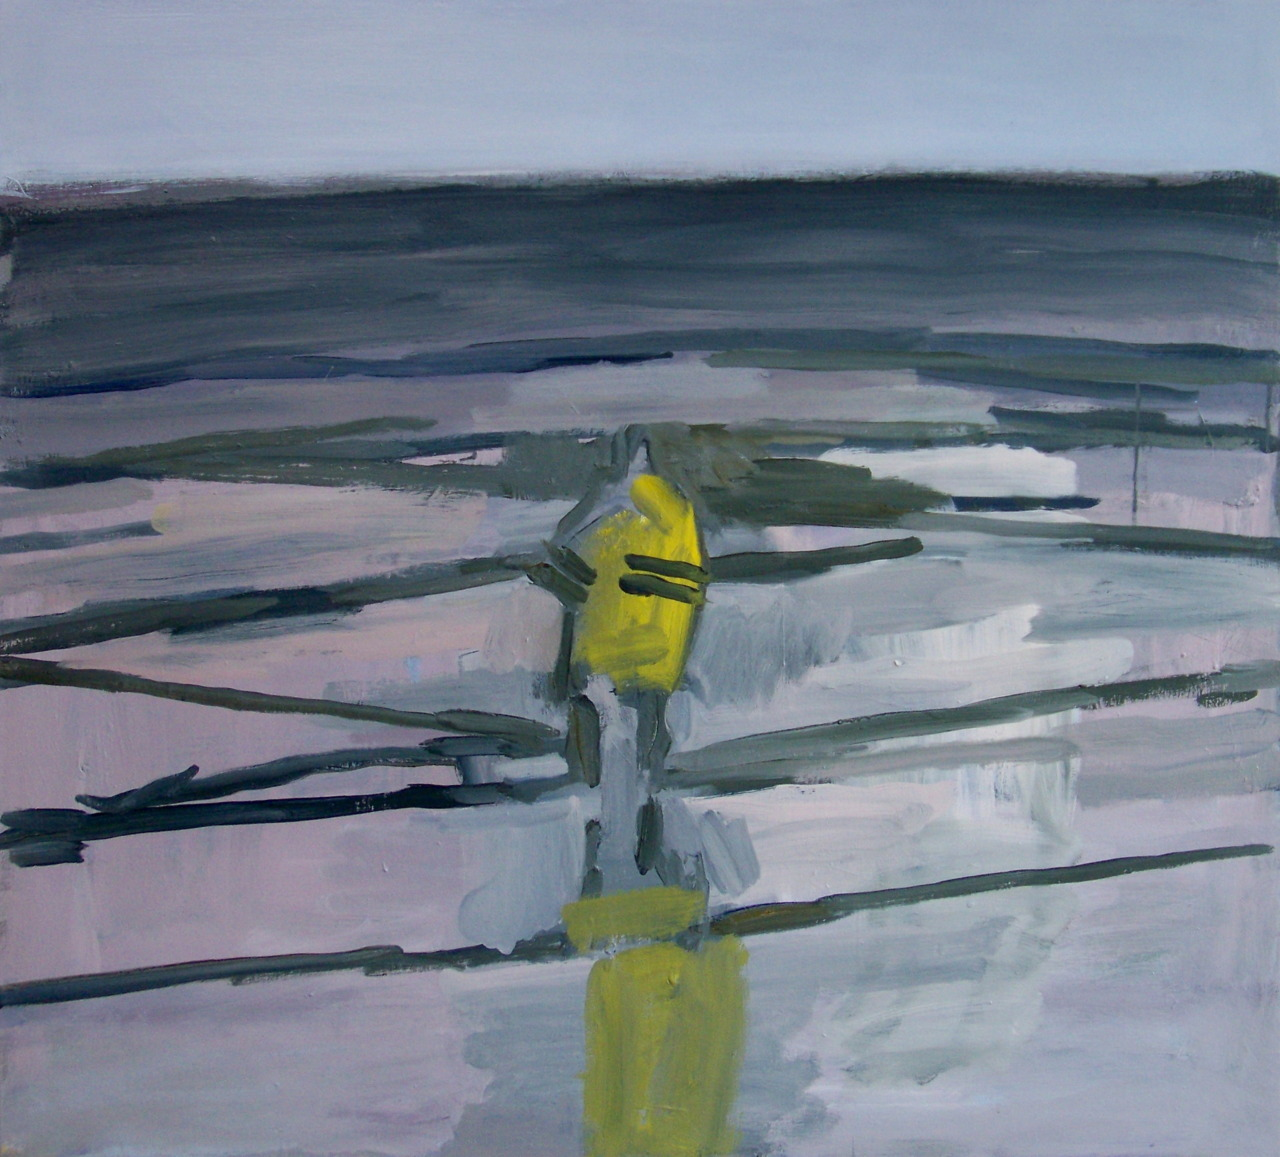 8th May 2012. I'm thinking that I might title this one 'Fishing""